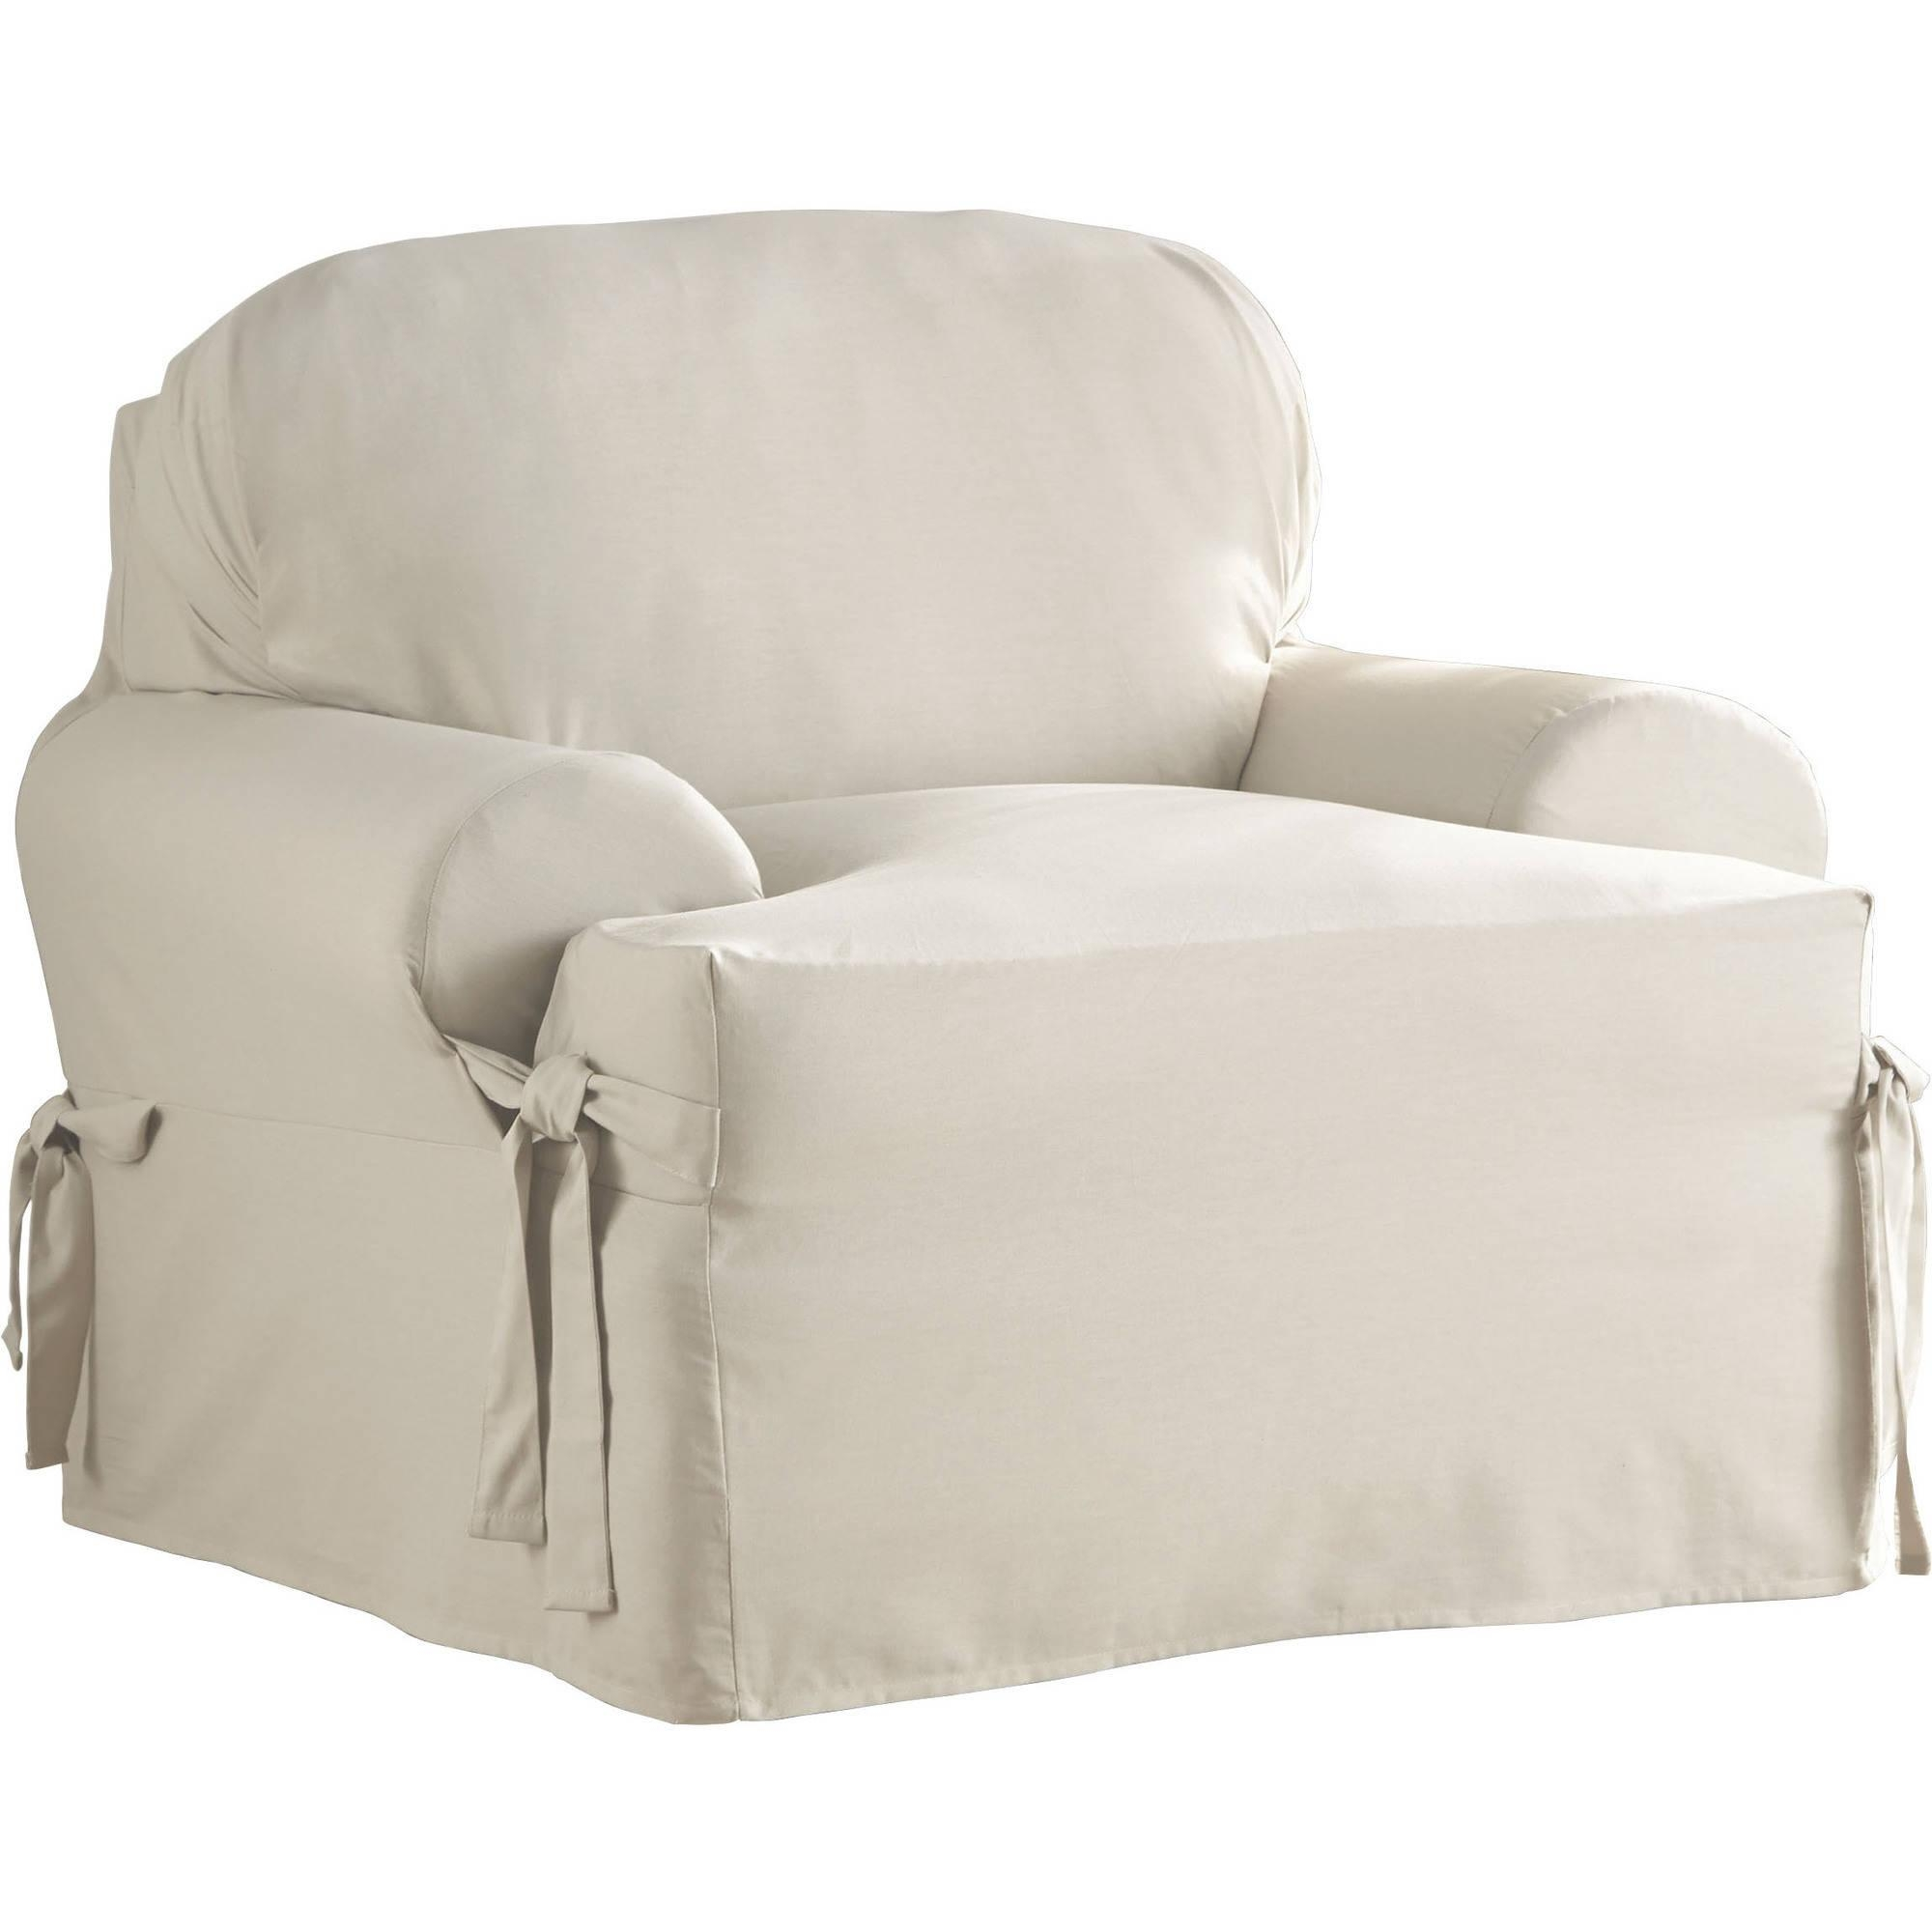 Slipcovers – Walmart Regarding Slipcovers For Chairs And Sofas (View 11 of 20)